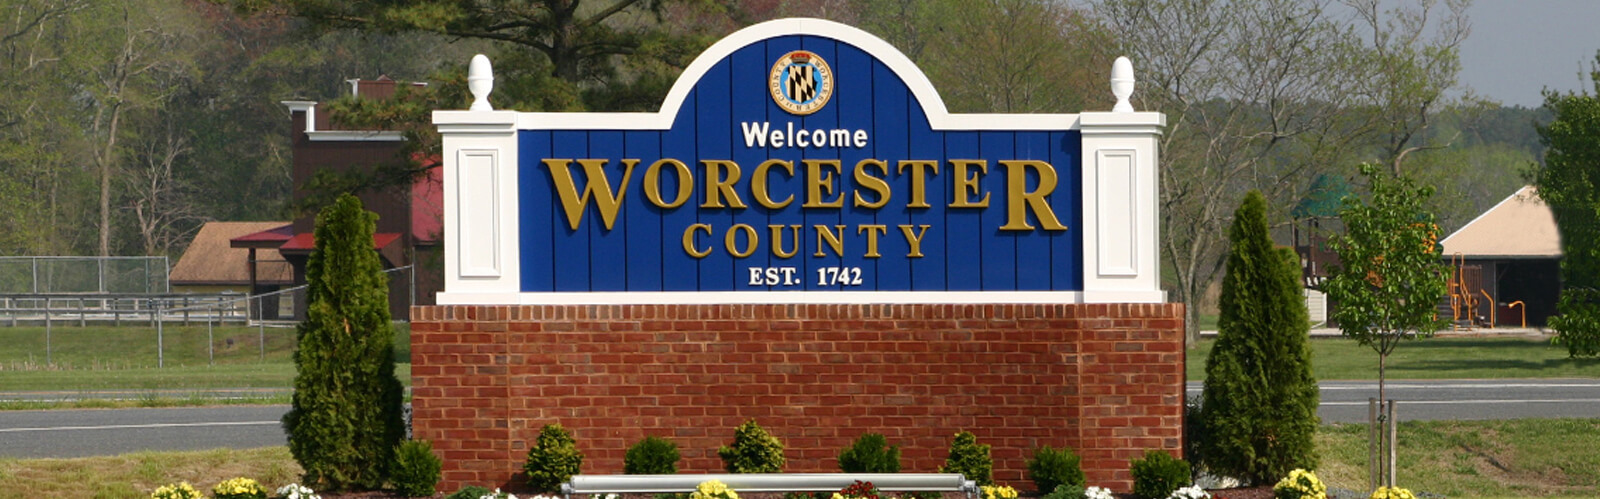 Welcome to Worcester County - Established 1742